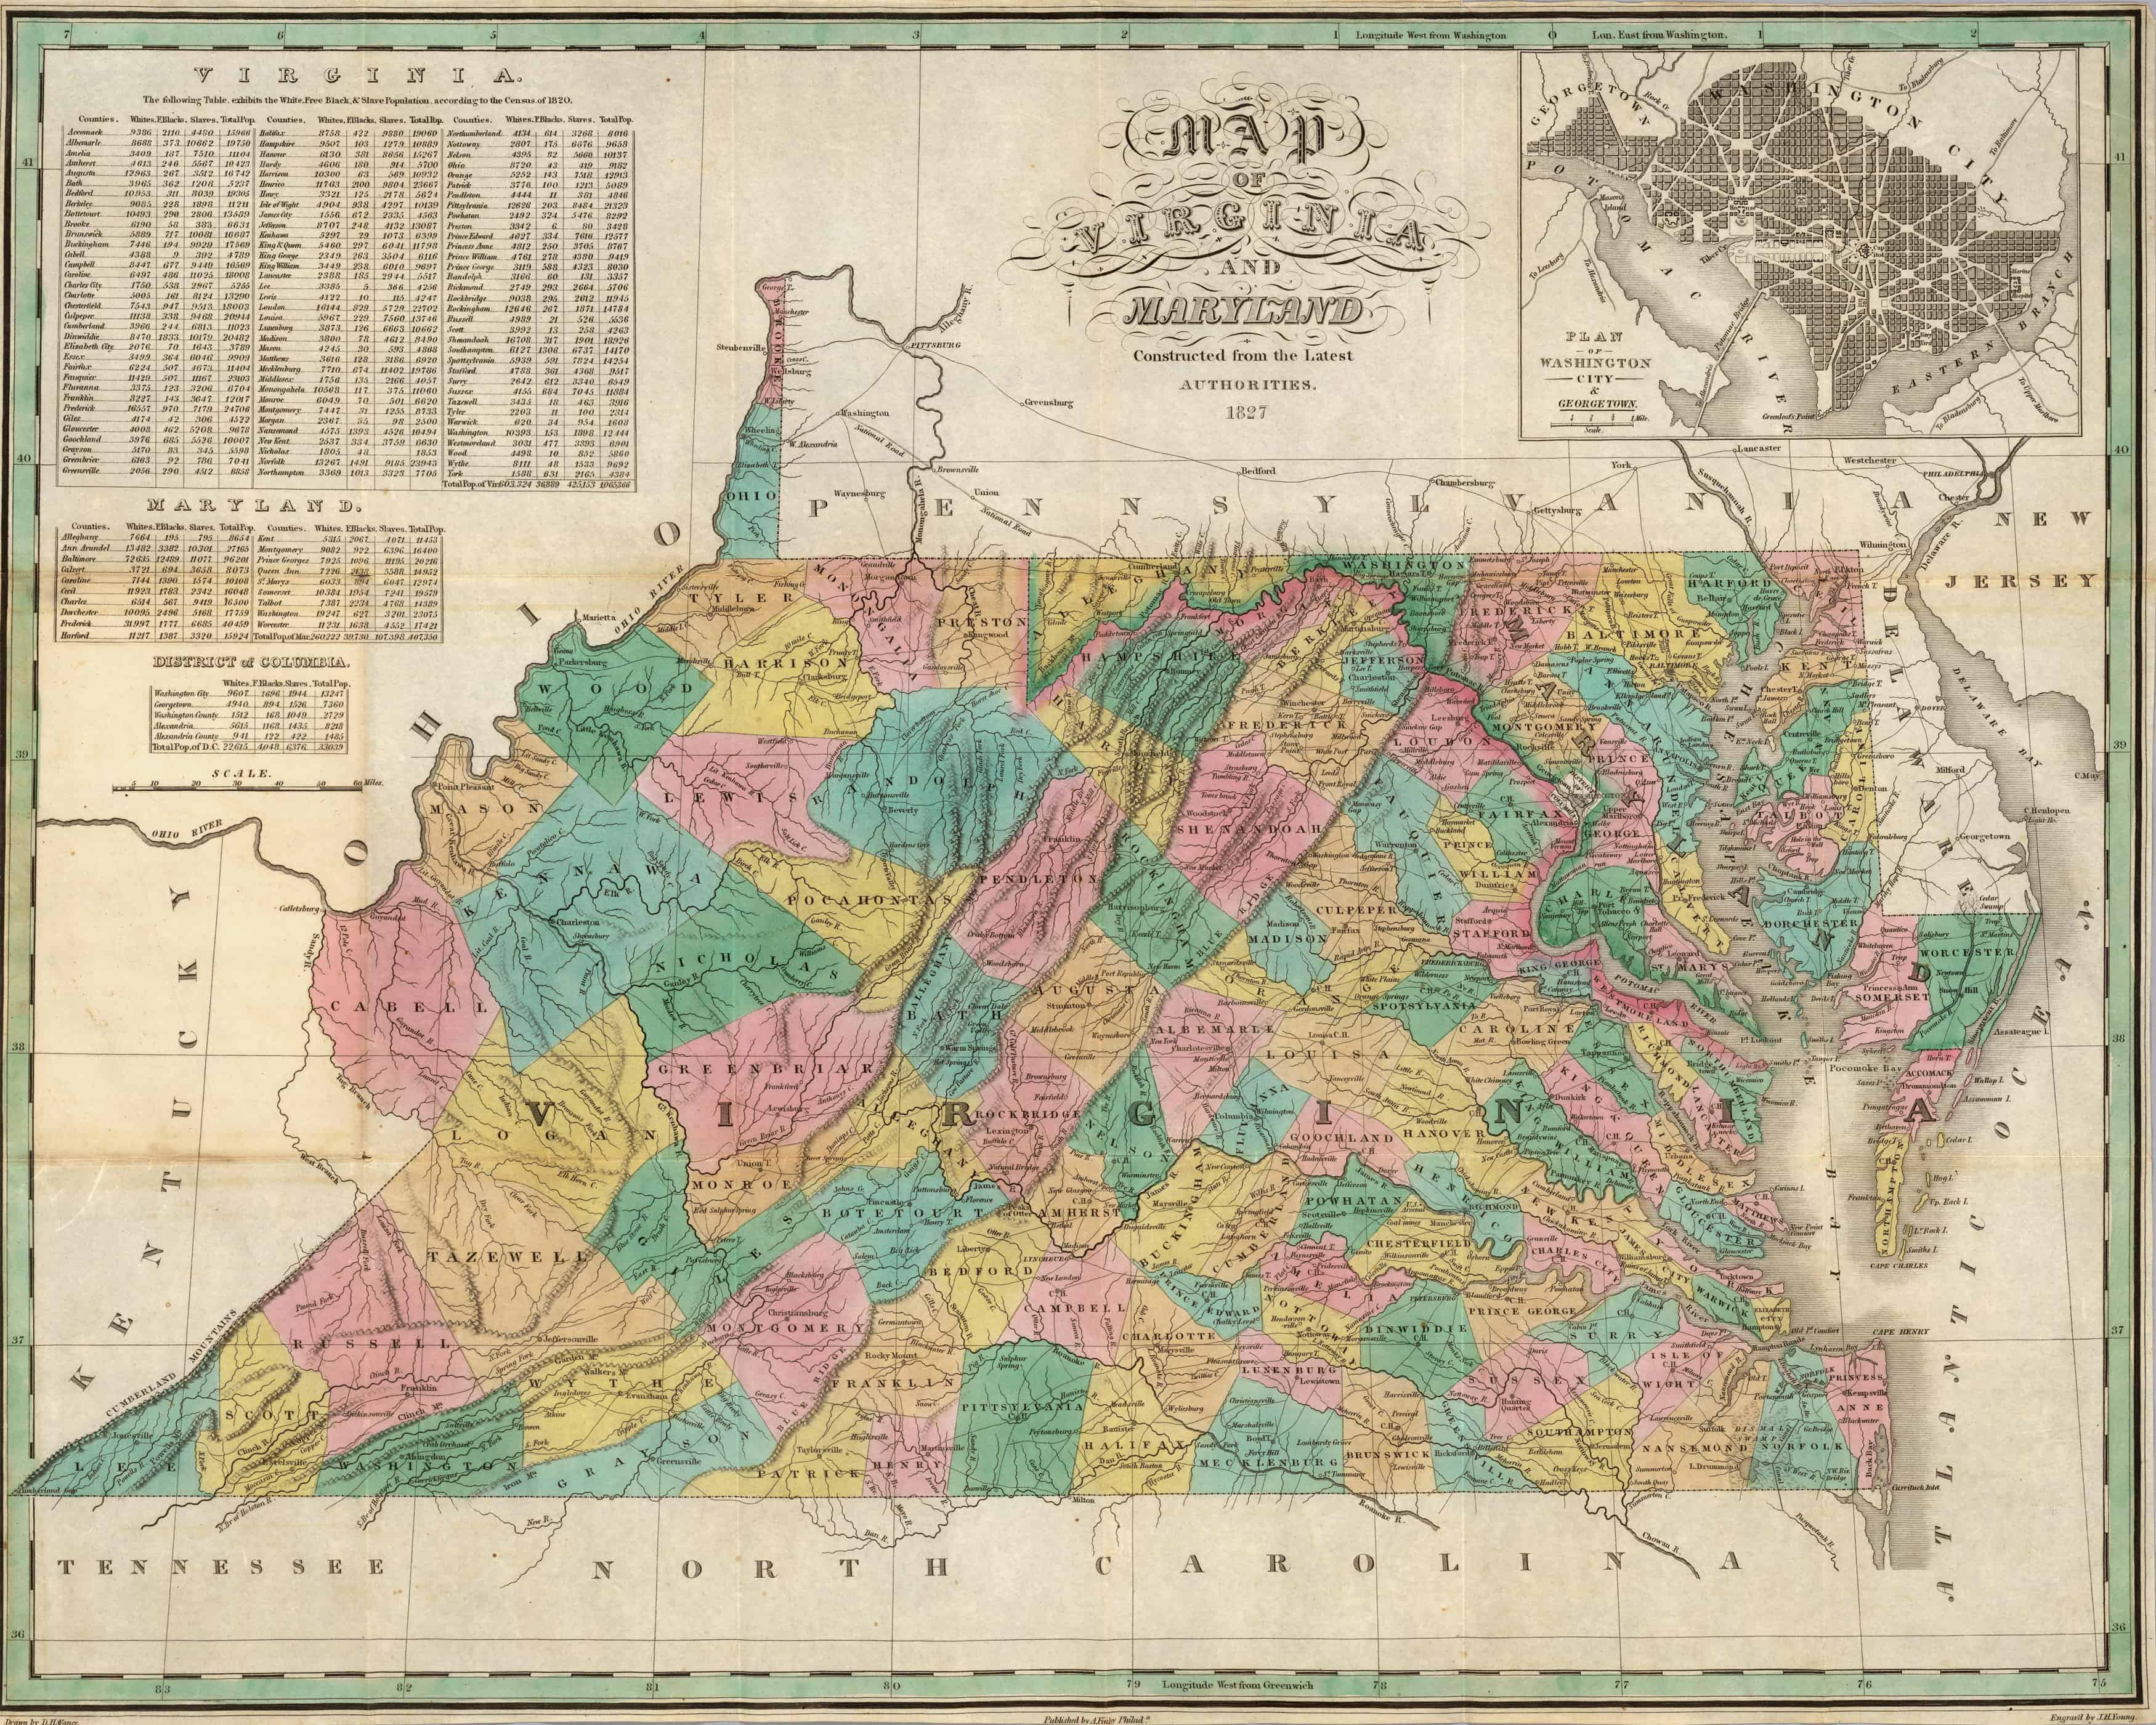 Old Historical City, County and State Maps of Virginia on map of virginia in 1825, map of virginia historical sites, map of virginia ohio, map of virginia in 1850, map of virginia in 1860, map of virginia in 1822, map of virginia va,